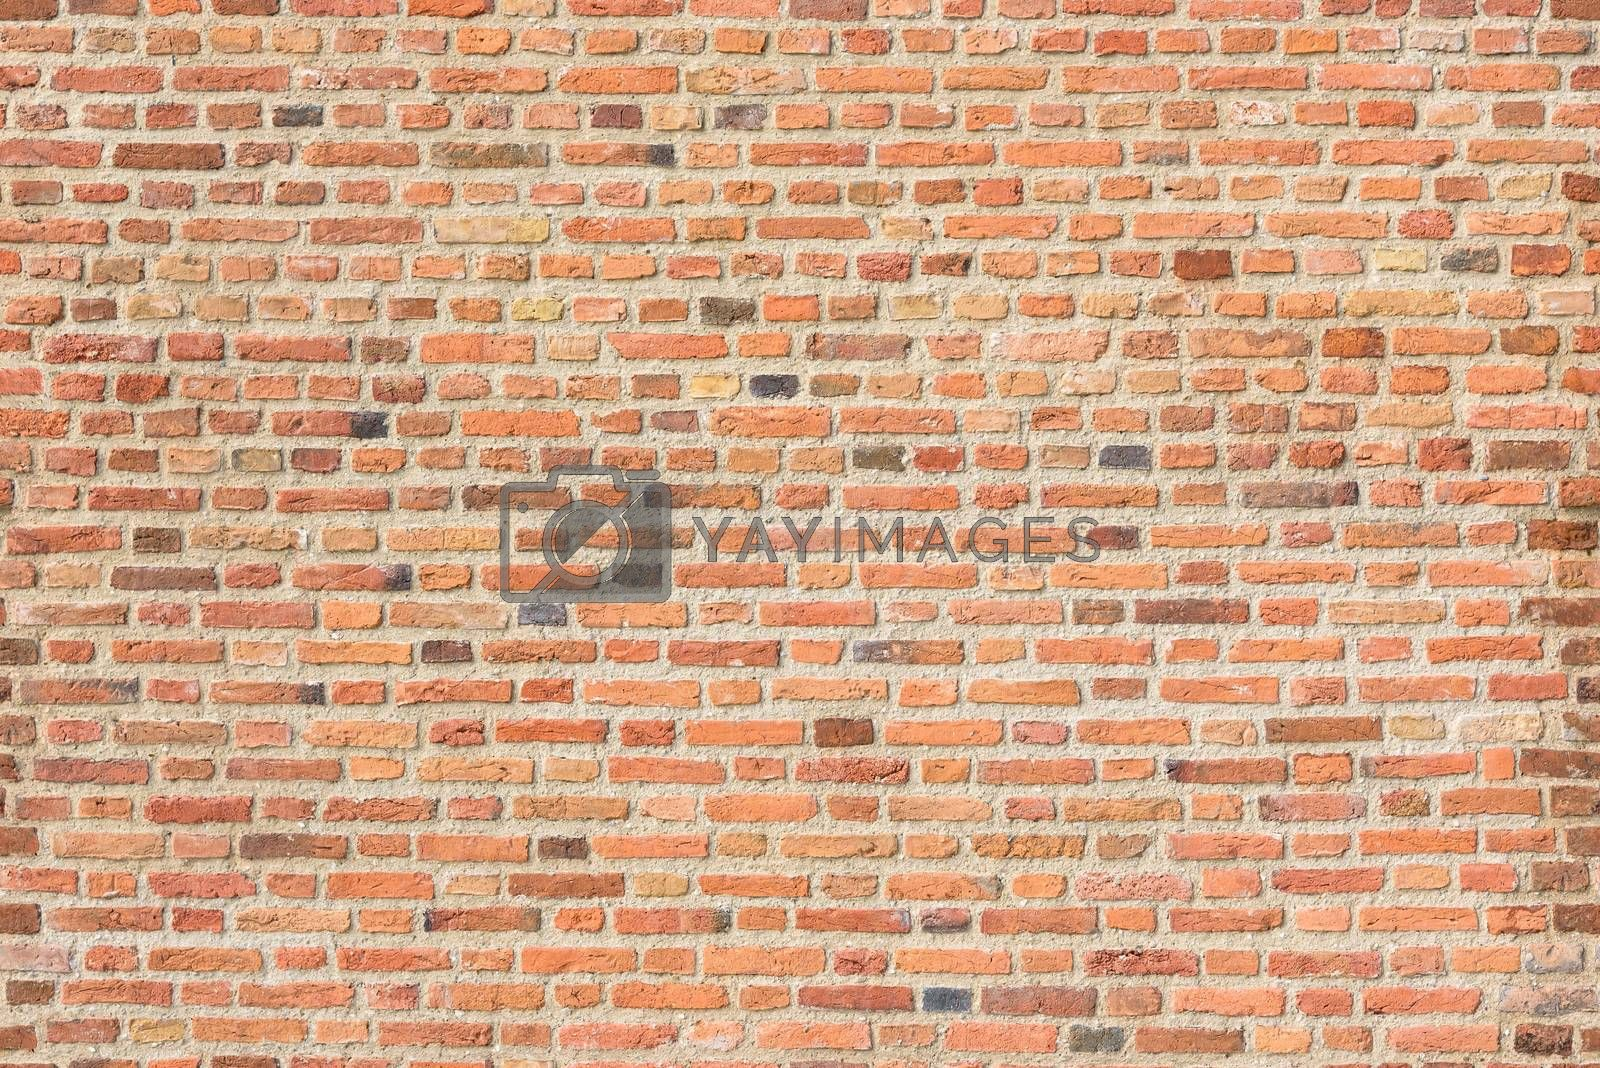 Old red brick wall as seamless texture or background